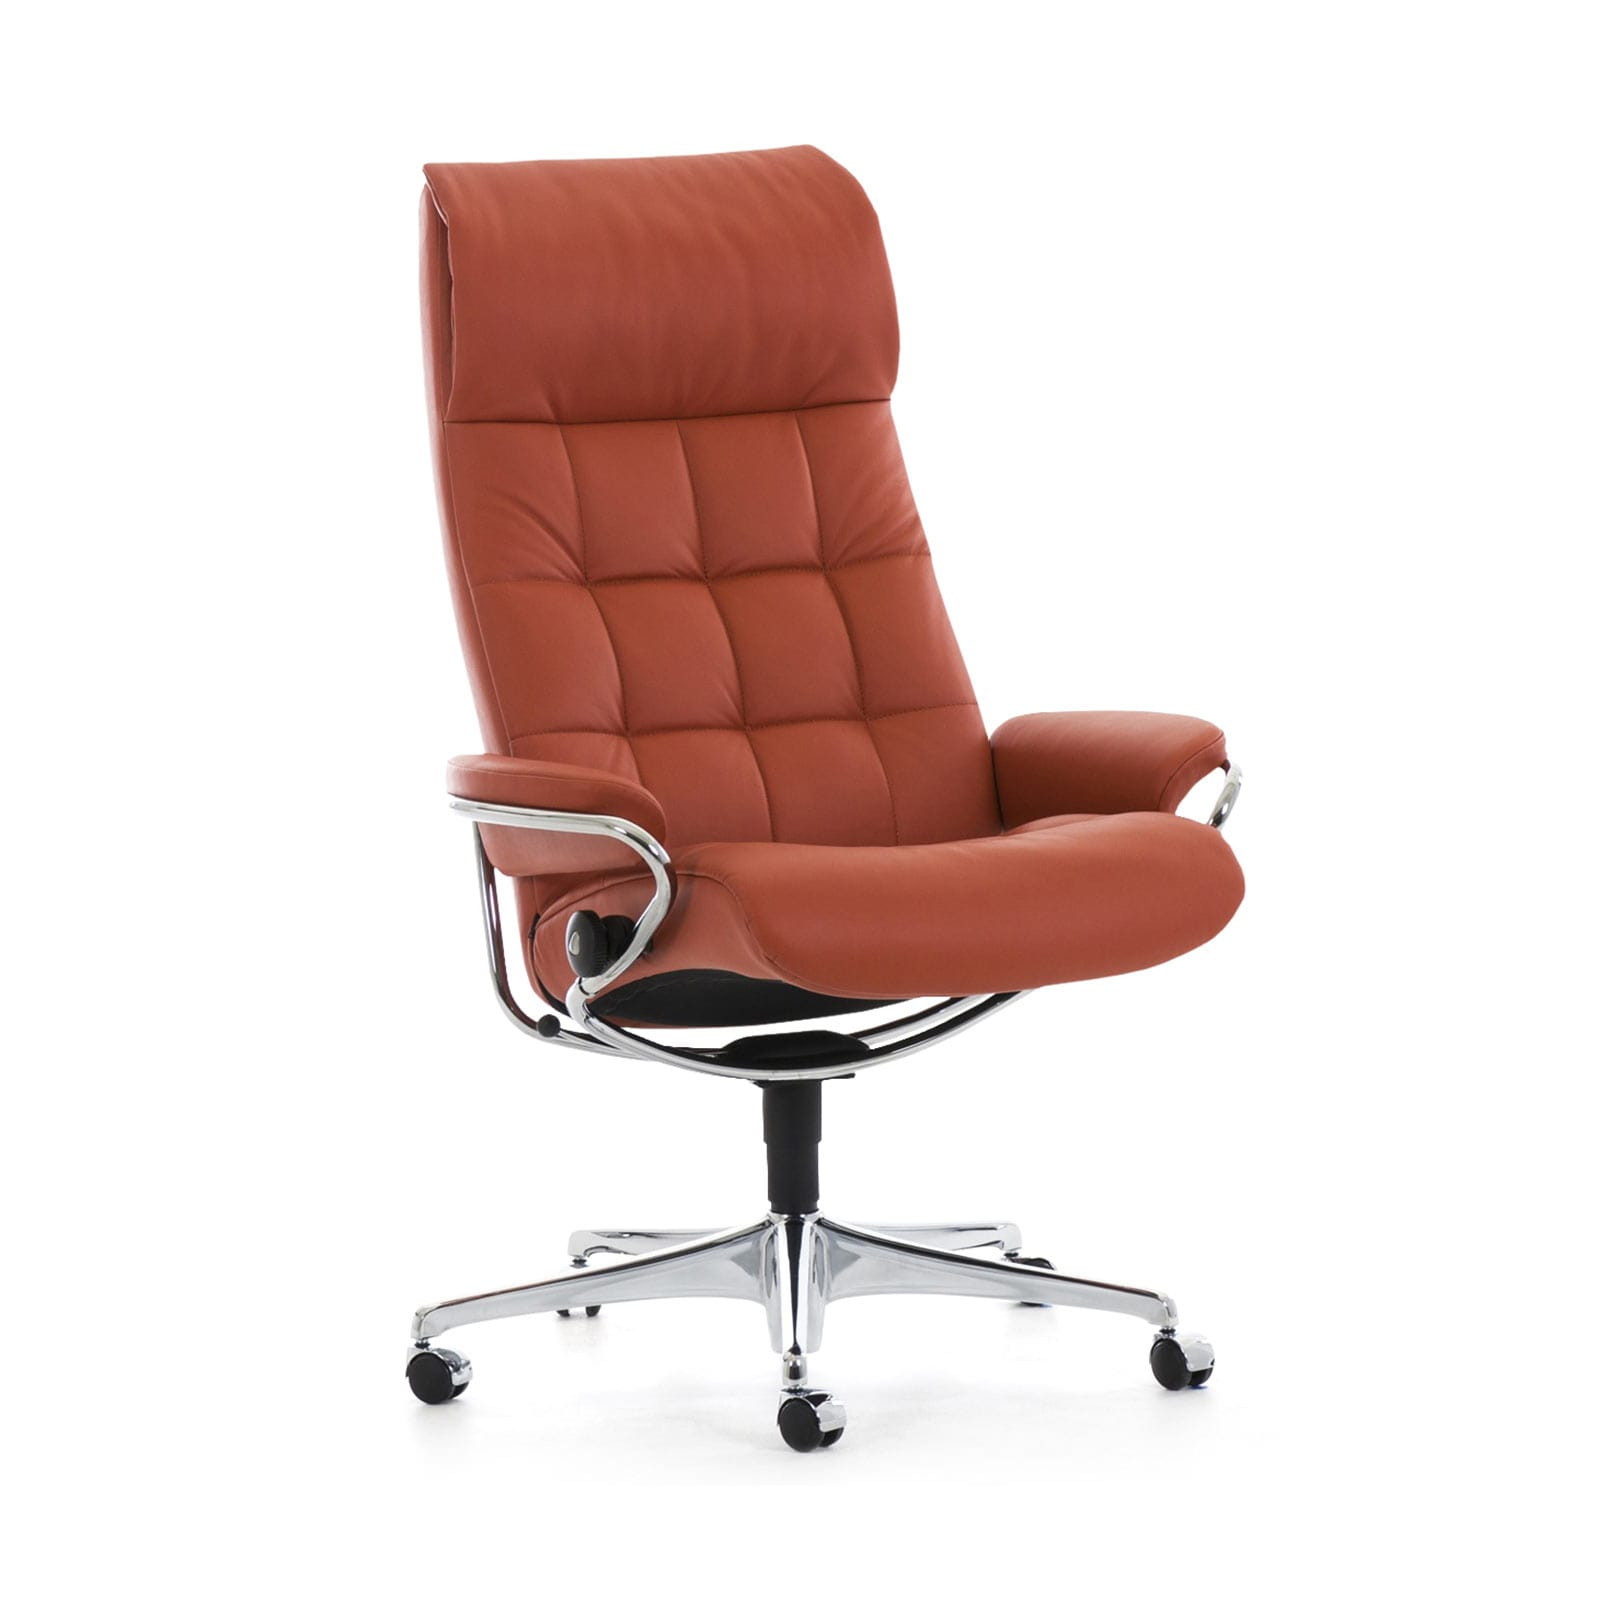 Stressless Bürostuhl Stressless London Luxuriöser Leder Bürostuhl Stressless